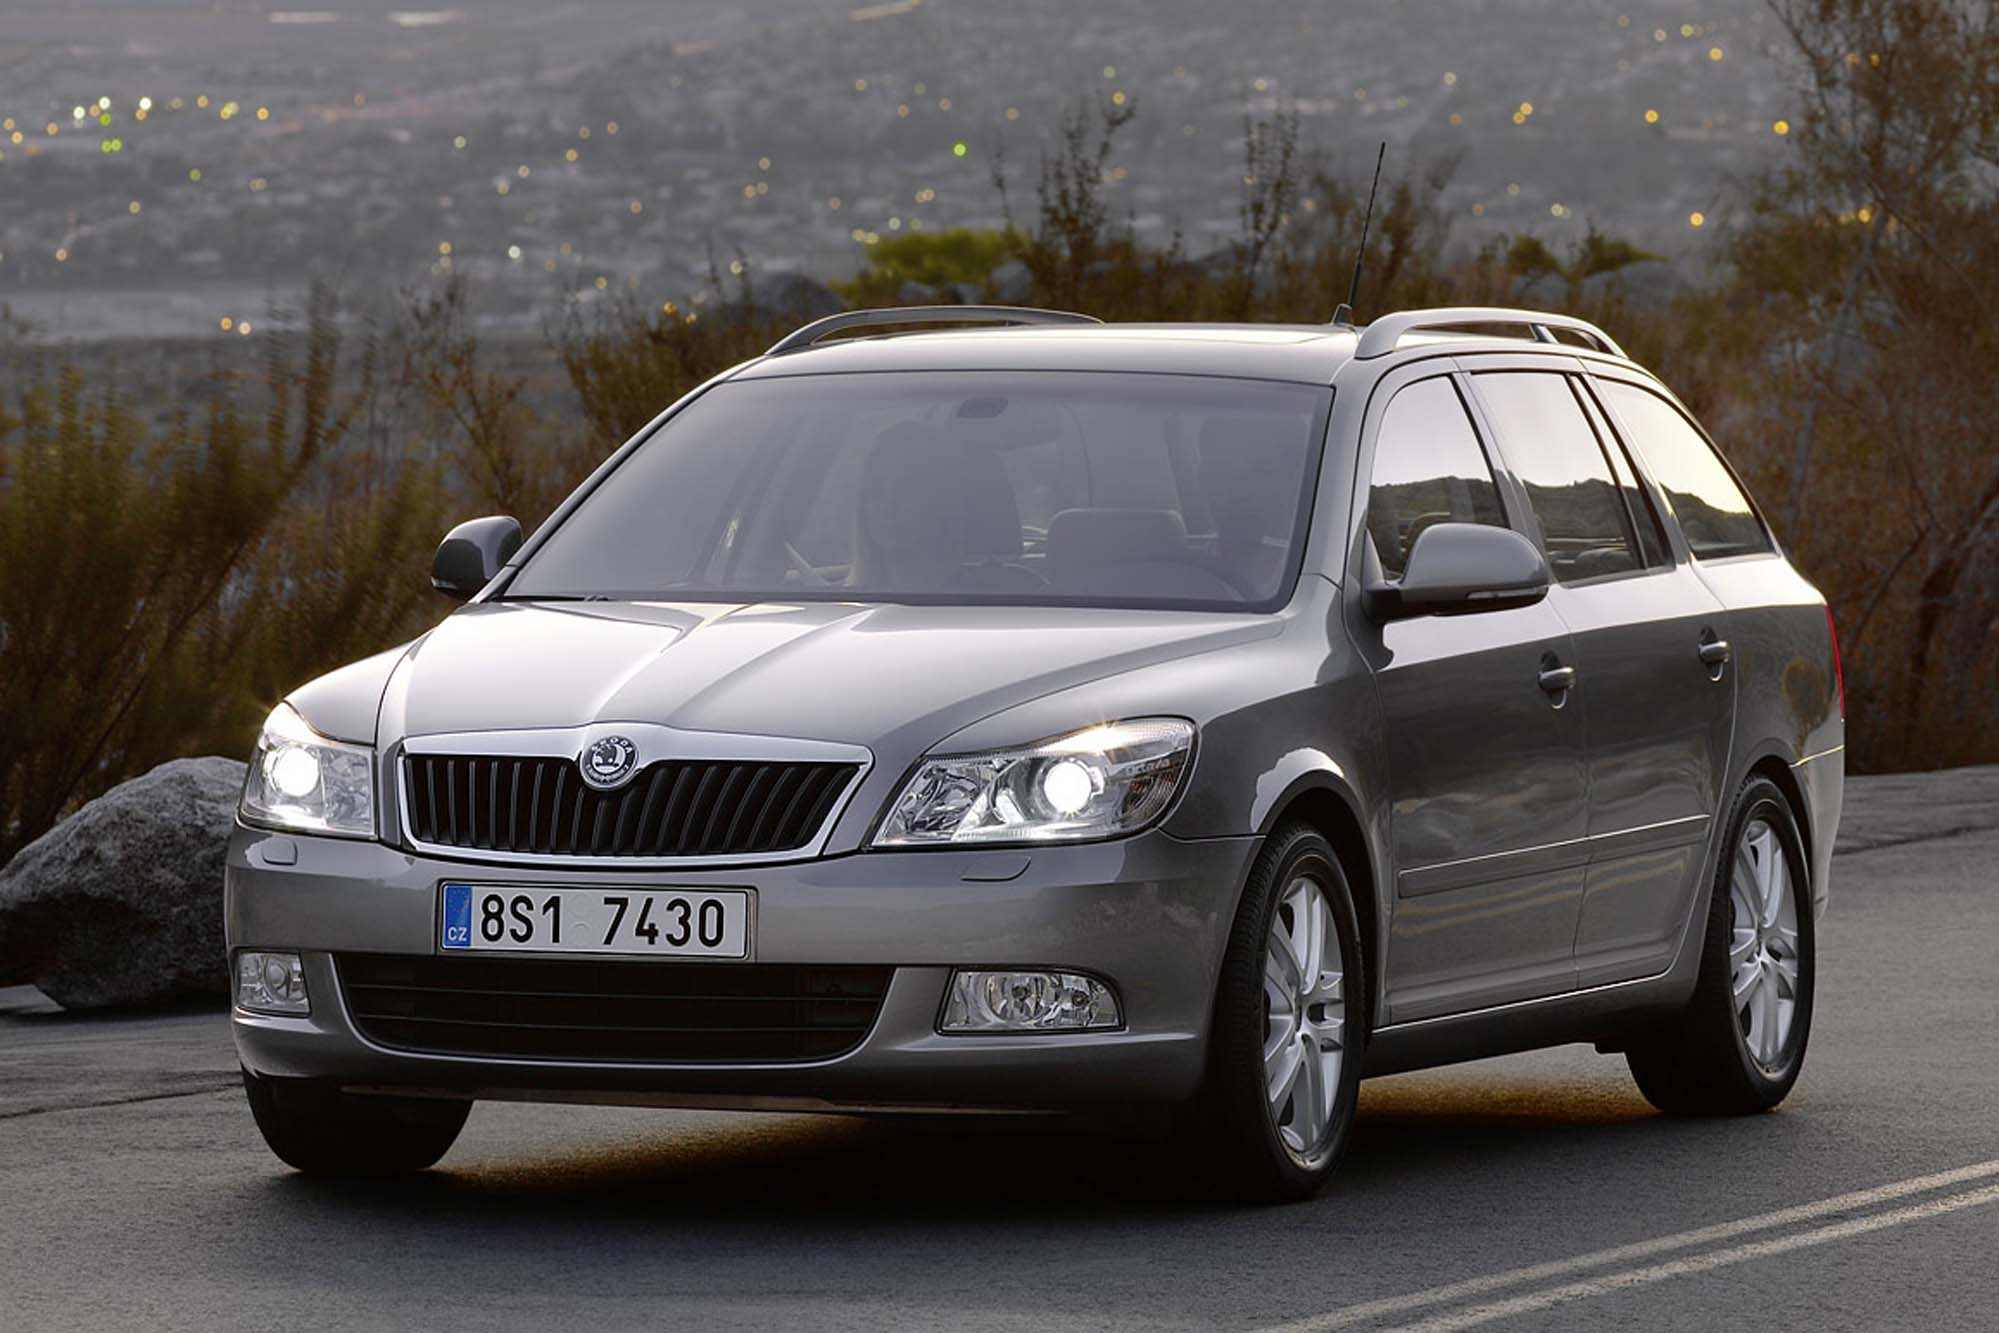 2009 skoda octavia tour ii pictures information and specs auto. Black Bedroom Furniture Sets. Home Design Ideas